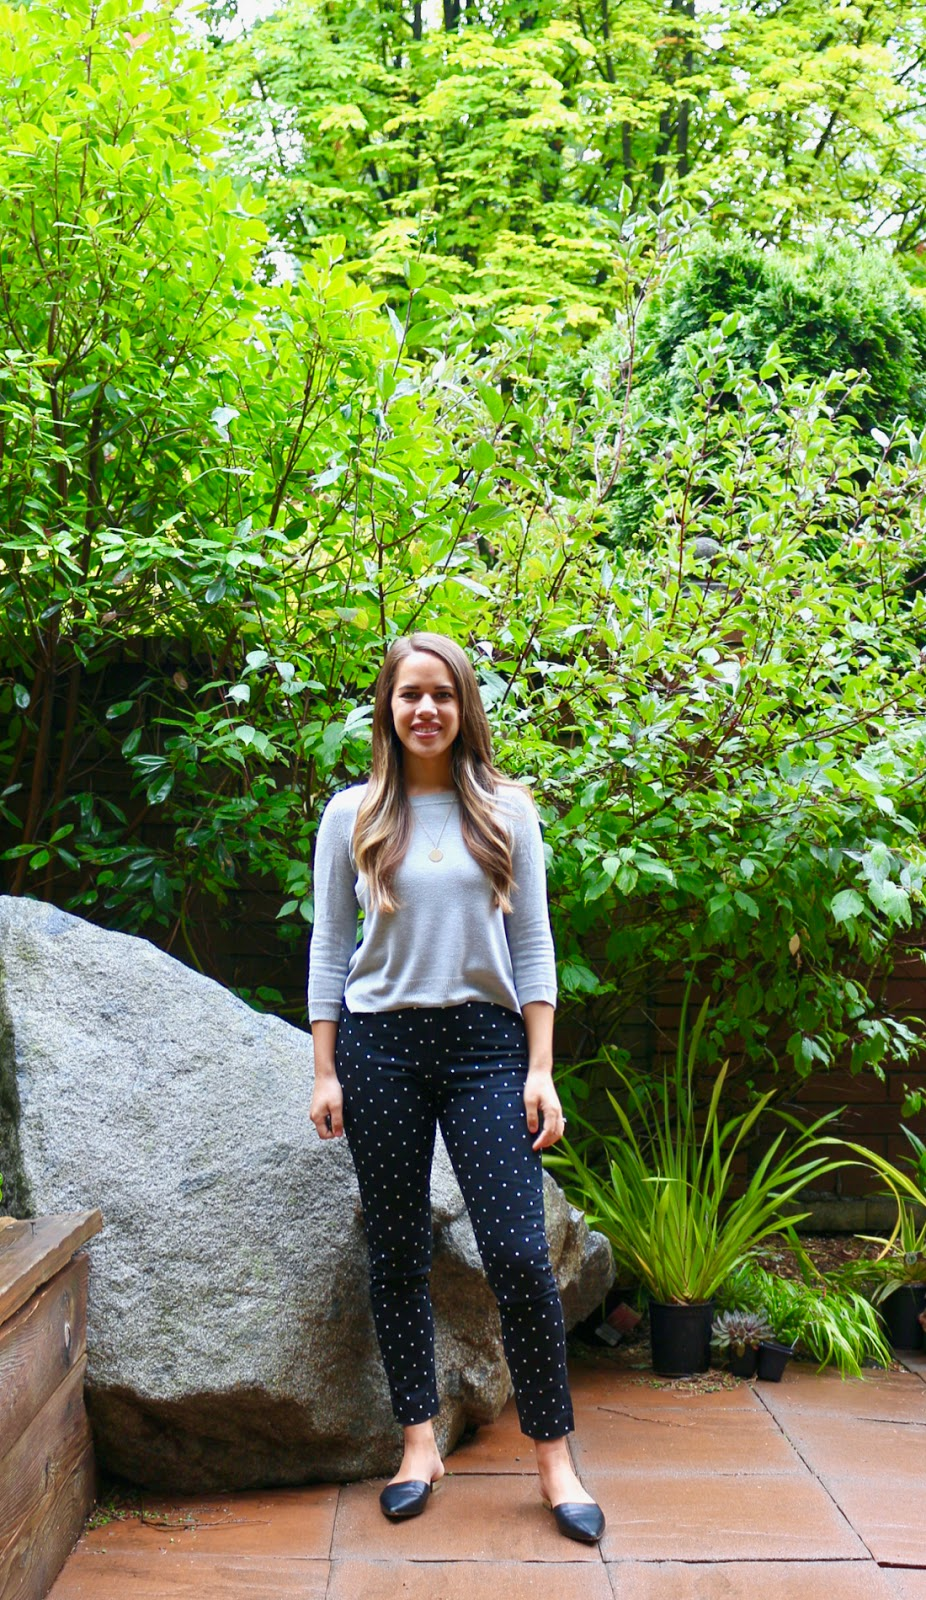 Jules in Flats -Old Navy High Rise Super Skinny Ankle Pants (Business Casual Spring Workwear on a Budget)